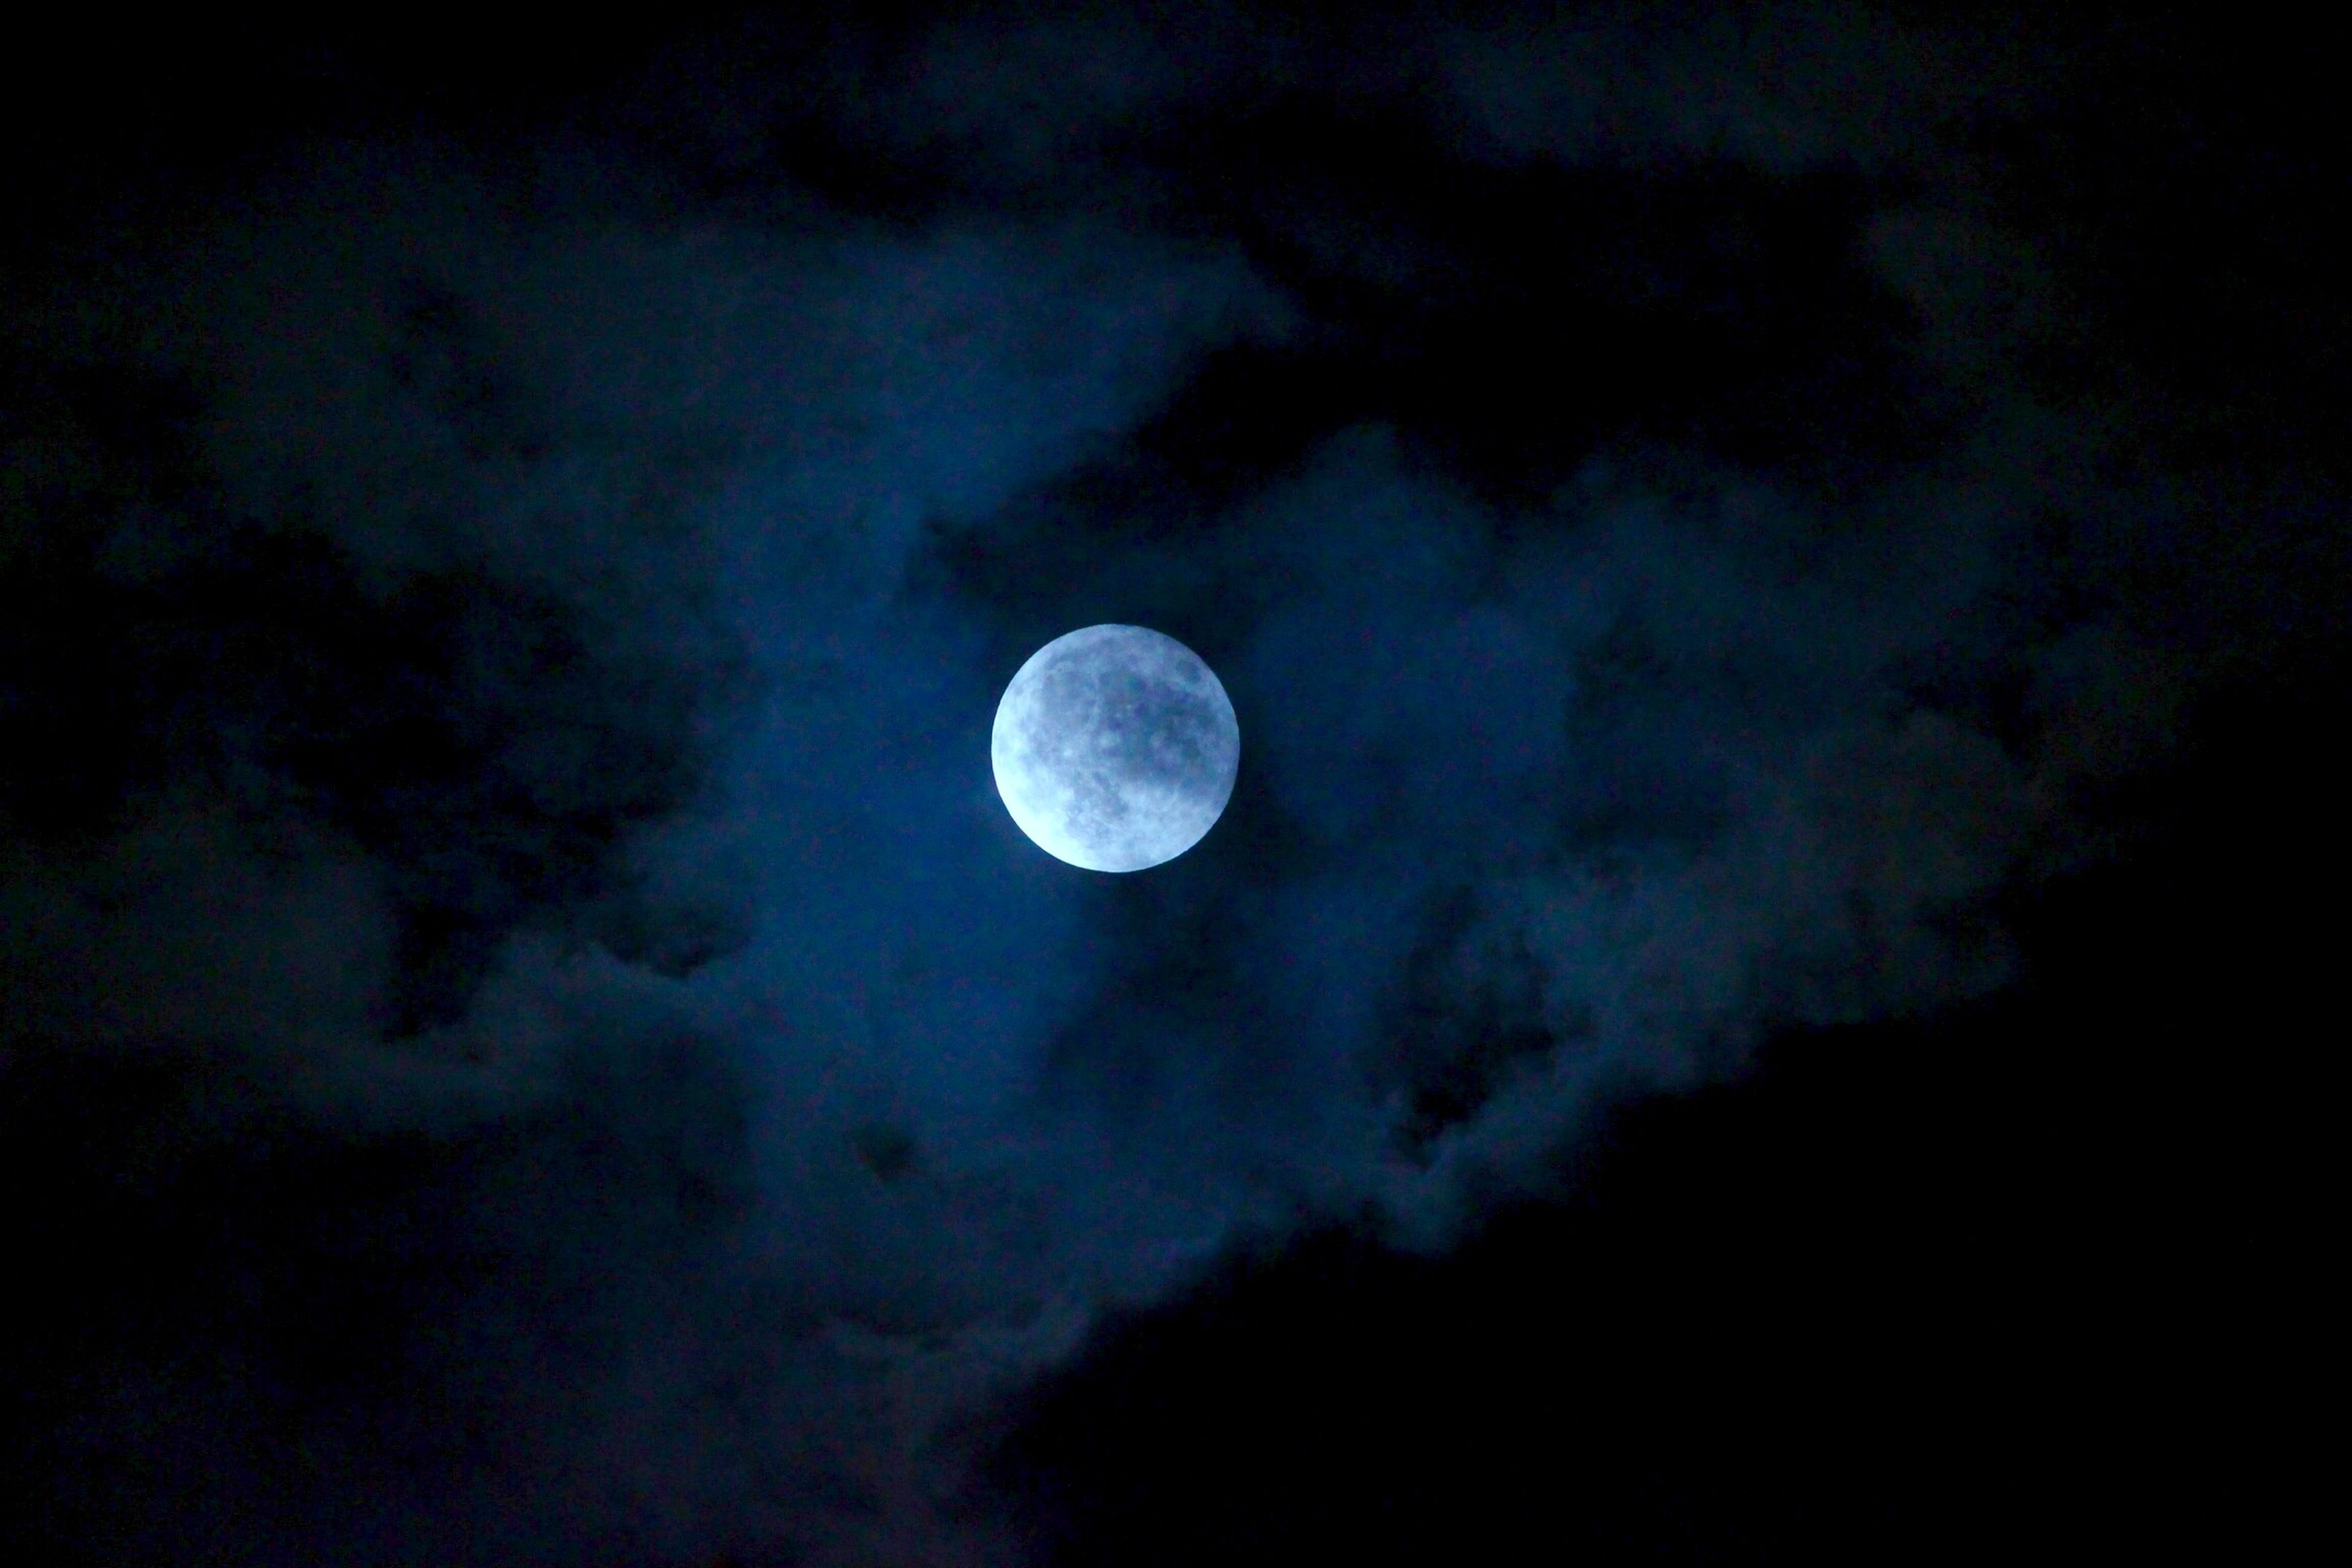 moon, astronomy, low angle view, sky, night, full moon, beauty in nature, scenics, planetary moon, tranquility, tranquil scene, nature, space exploration, idyllic, majestic, moon surface, discovery, sky only, cloud - sky, moonlight